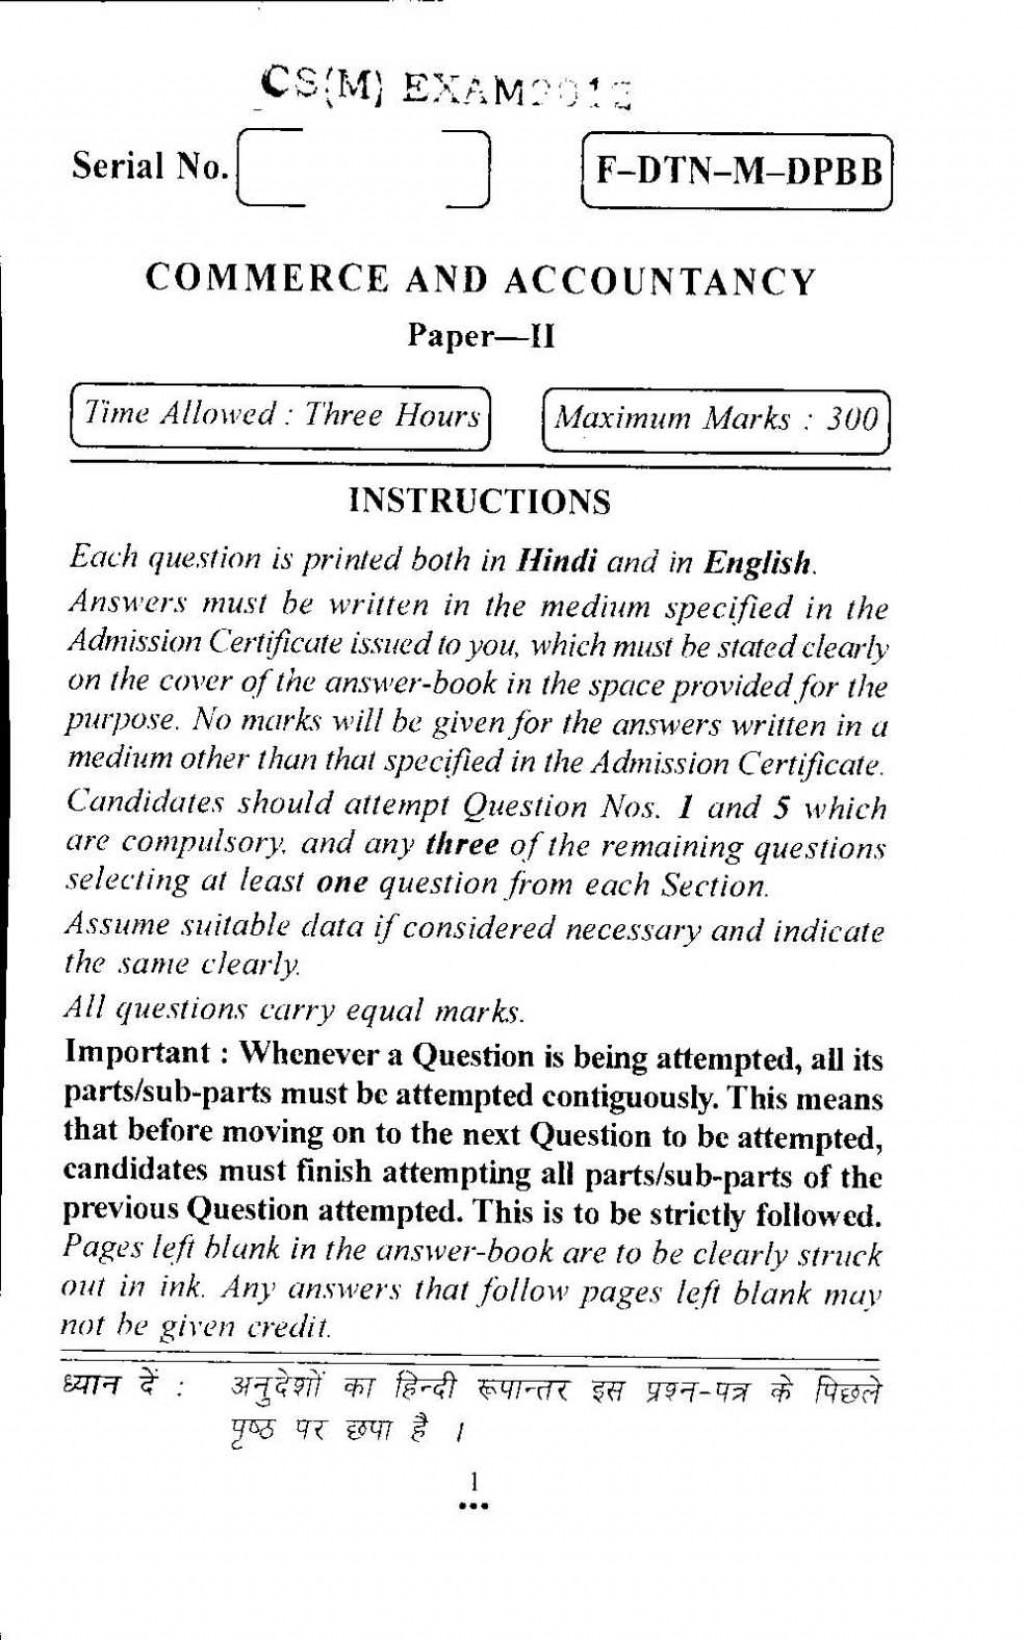 009 Essay Example Civil Services Examination Commerce And Accountancy Paper Ii Previous Years Que Racism Fantastic Argumentative Topics Examples Large